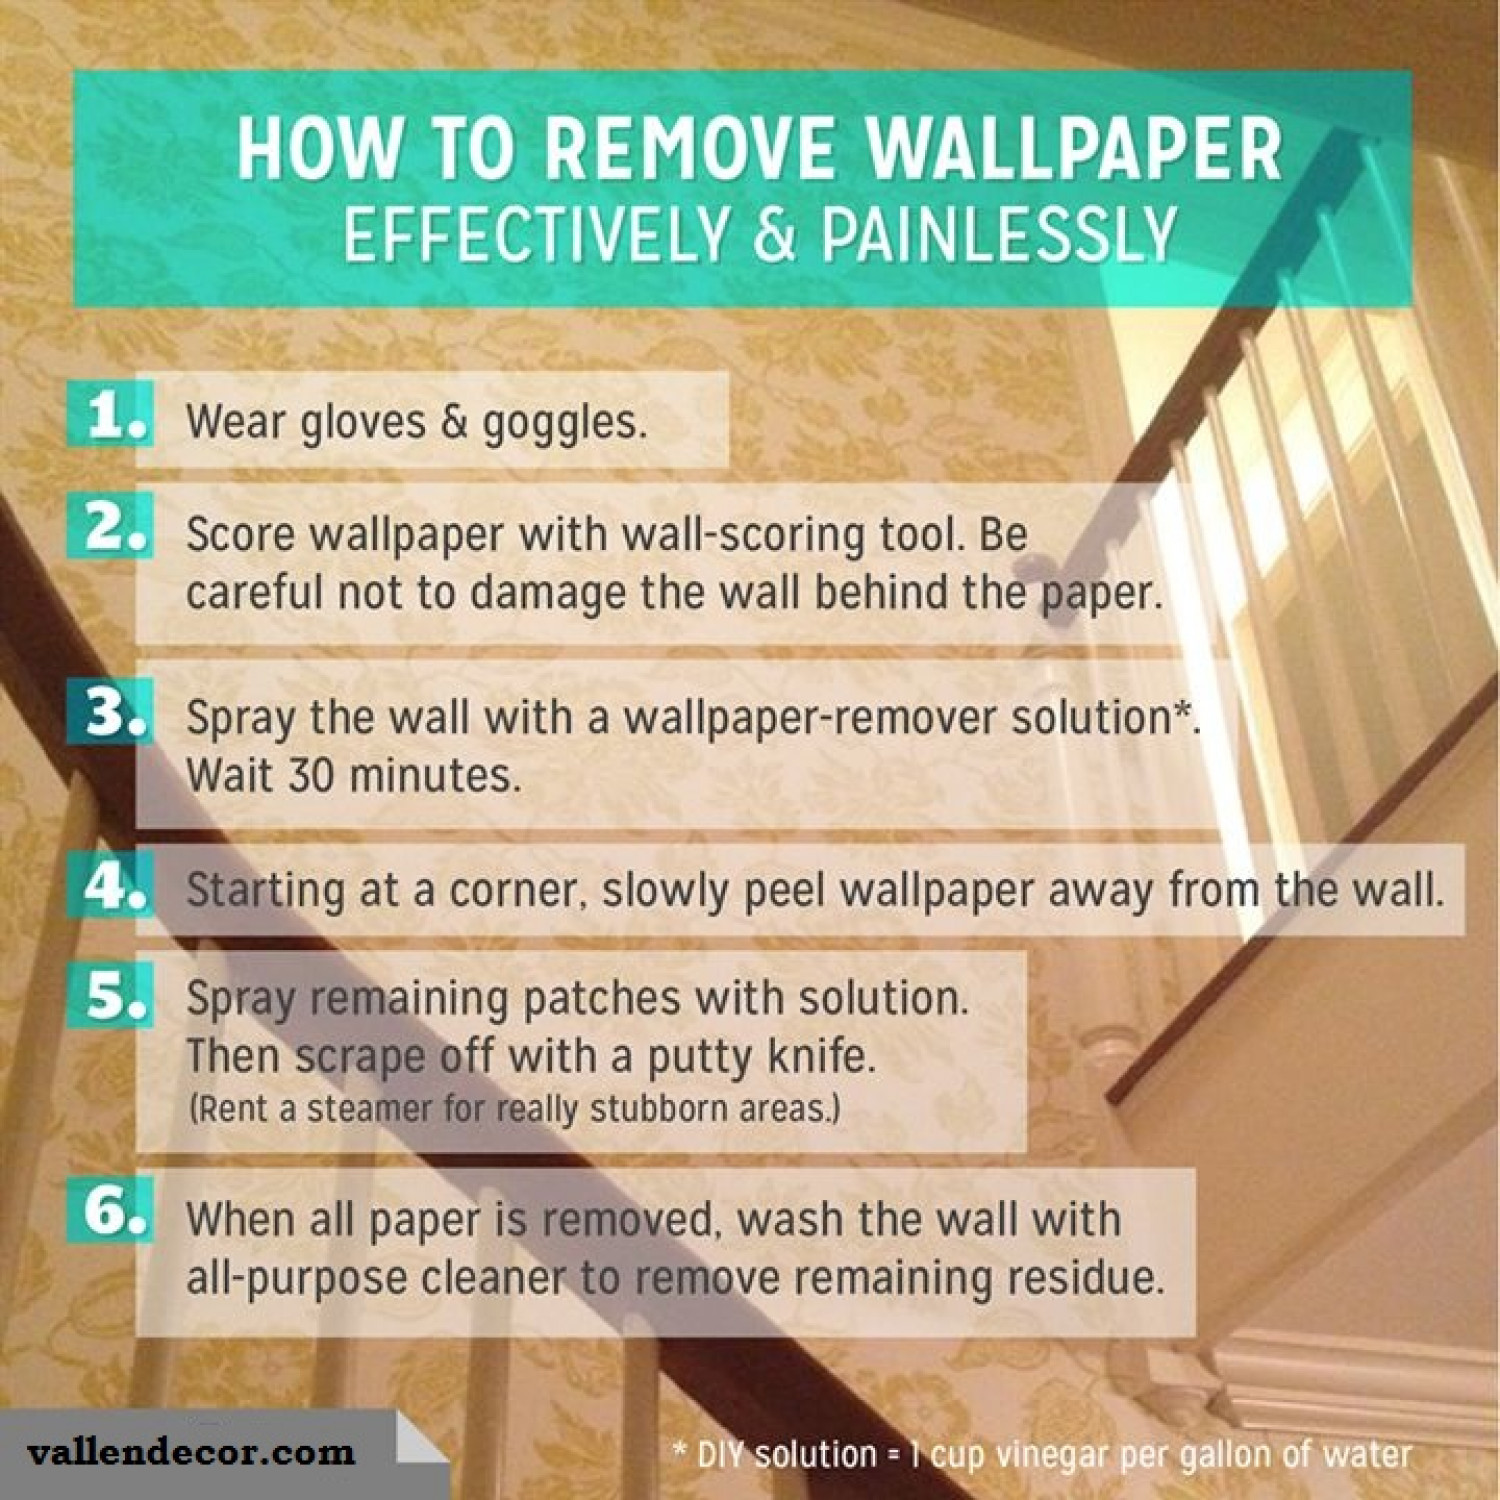 How To Remove The Wallpaper Effectively And Painlessly